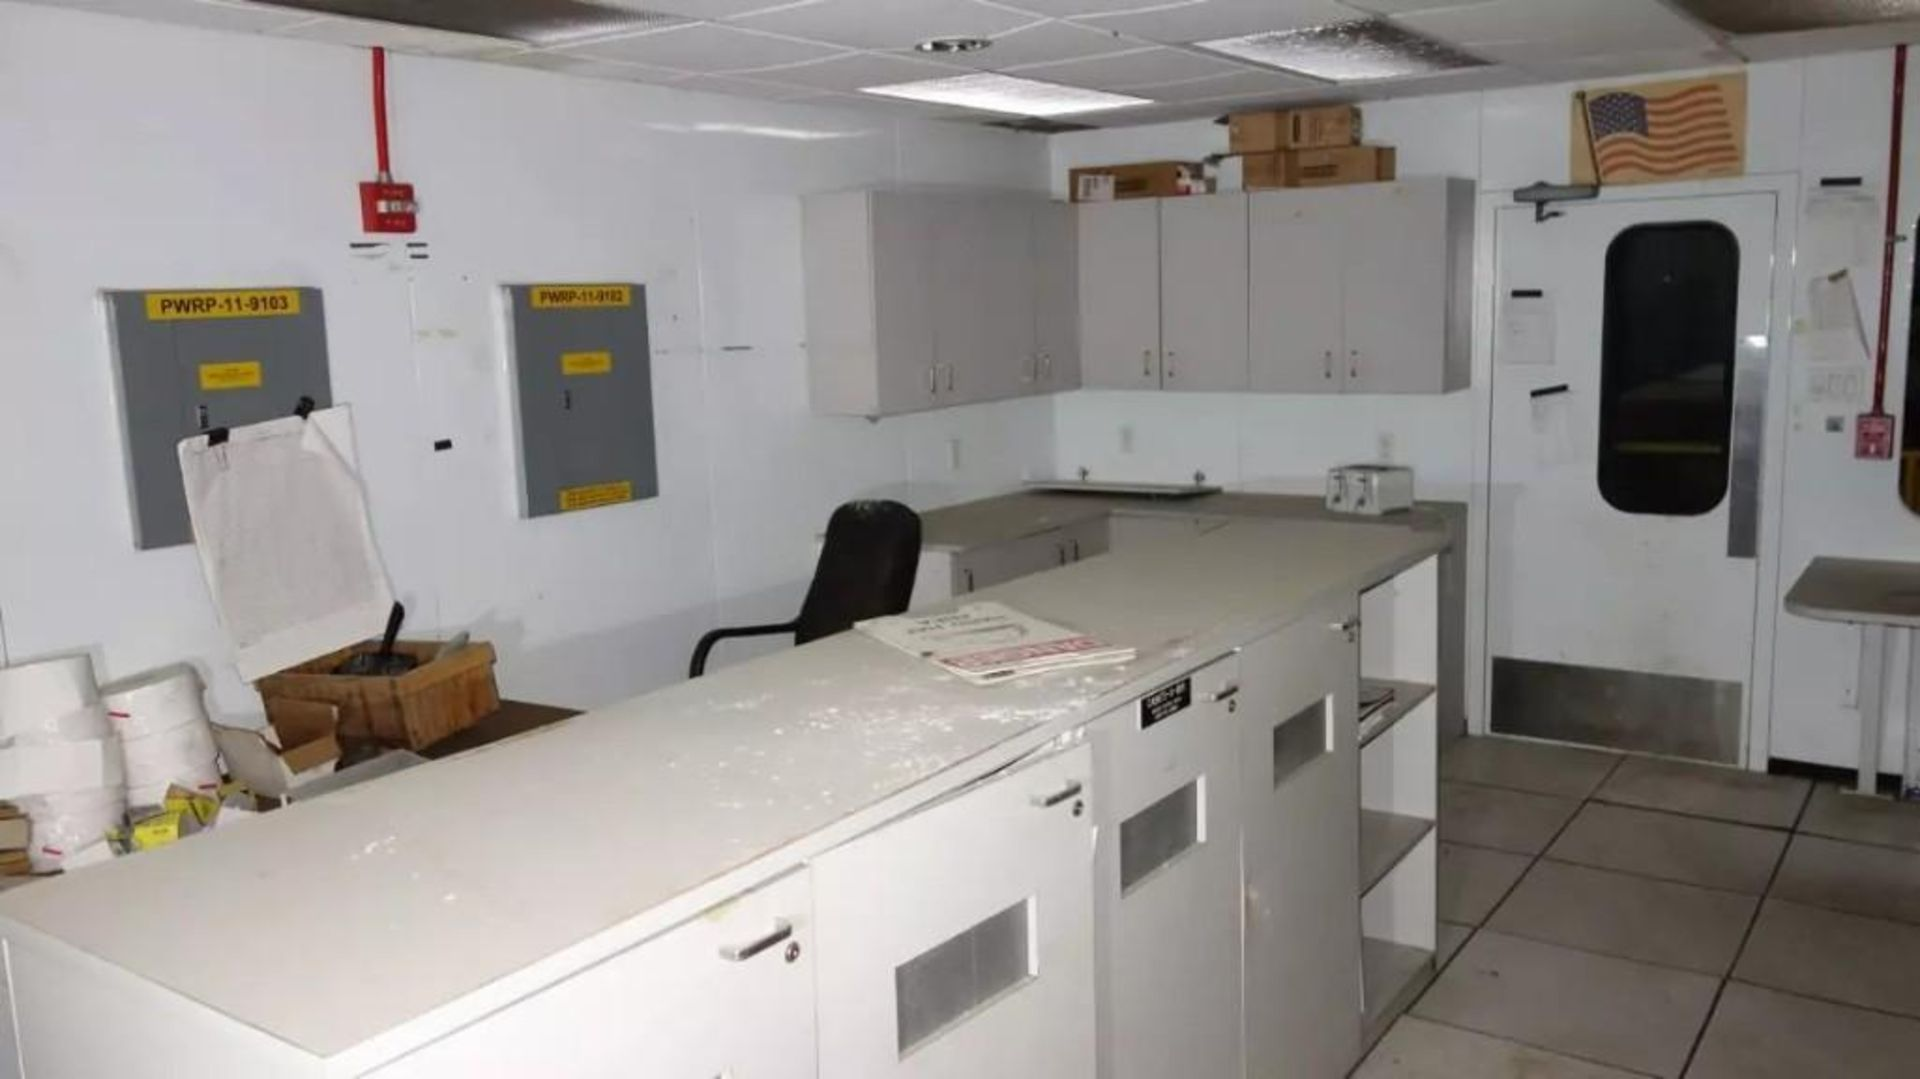 PREFABRICATED MODULAR OFFICE MECART COMMAND CENTER OFFICE WITH CONTENTS, 25X18FT (MISSING WINDOWS) - Image 8 of 11